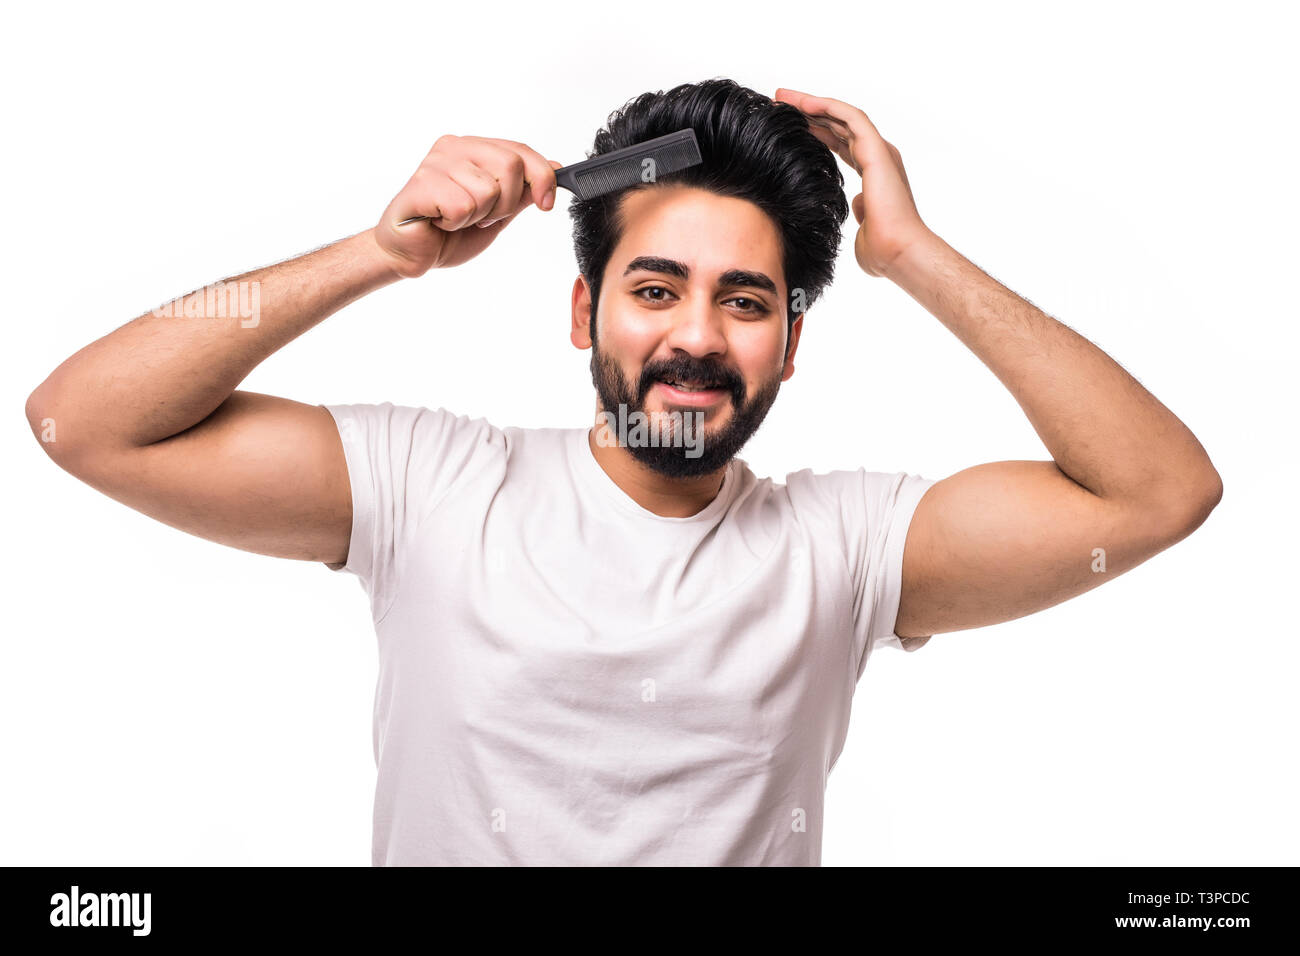 Barber shop concept. Smiling handsome young brunet in white t shirt is standing on the pure background, brushing his hair. His hairdo is stylish and t Stock Photo